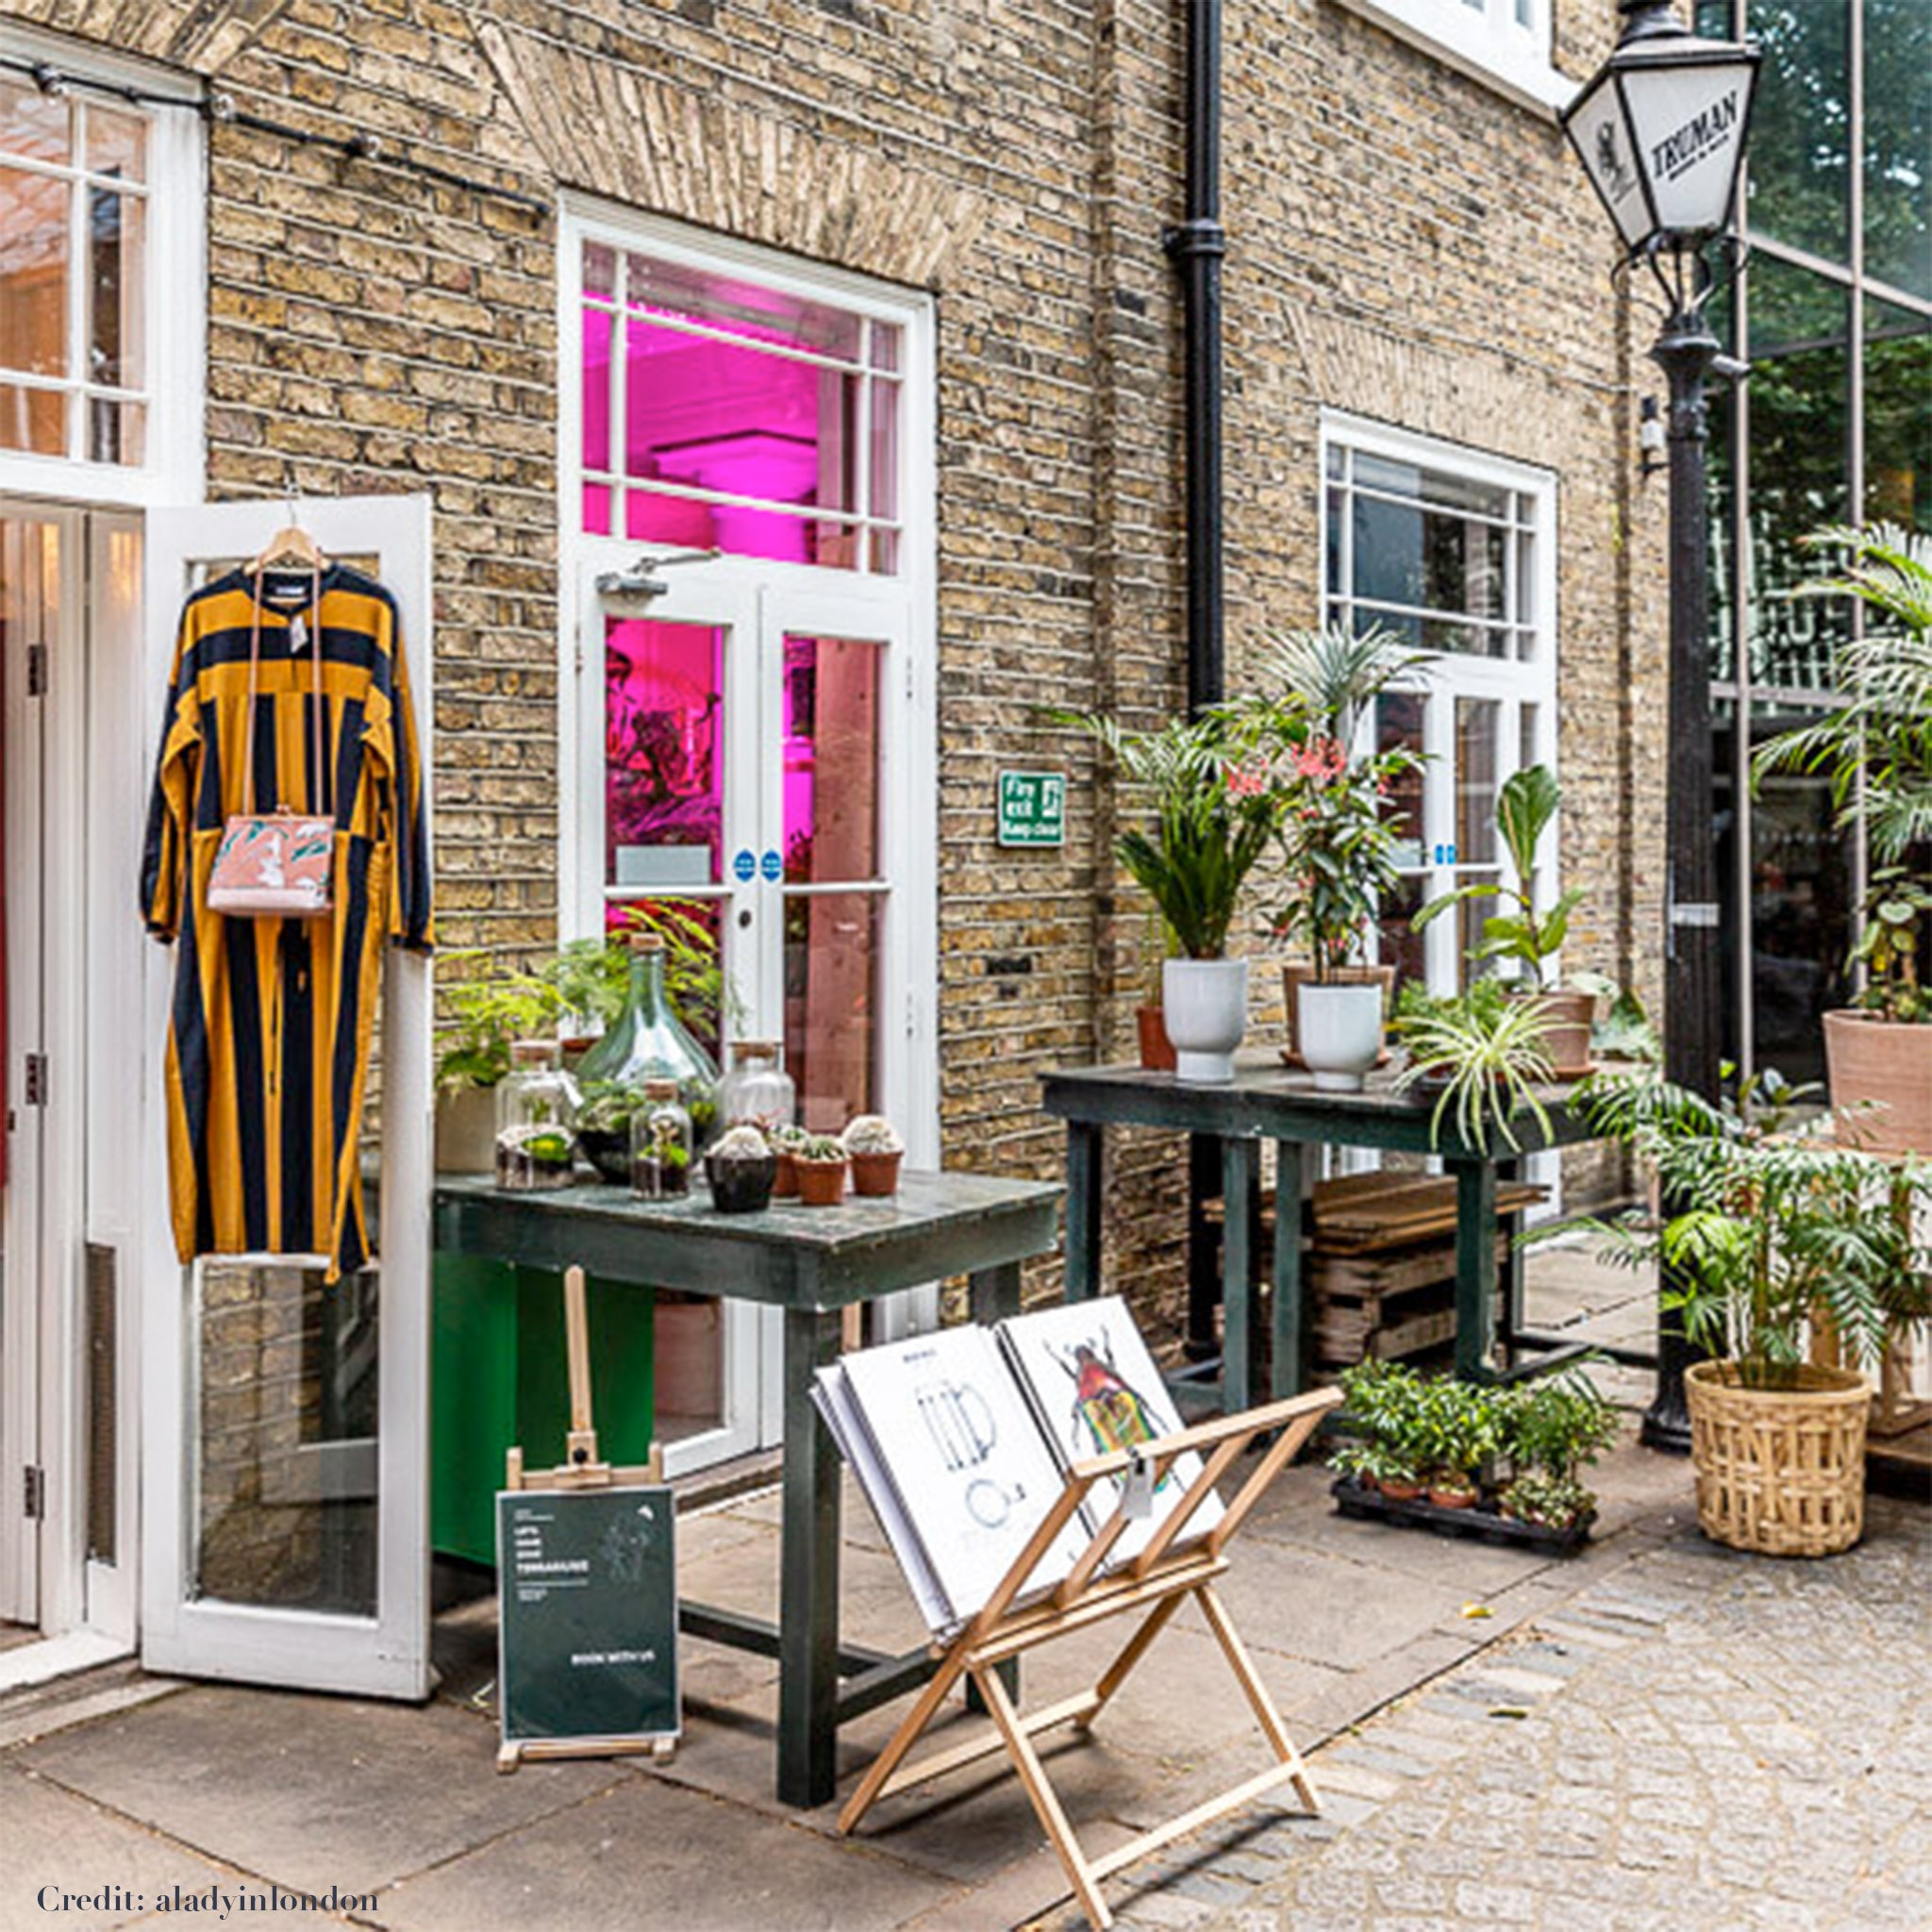 Our Sustainable Shopping Guide to Brick Lane